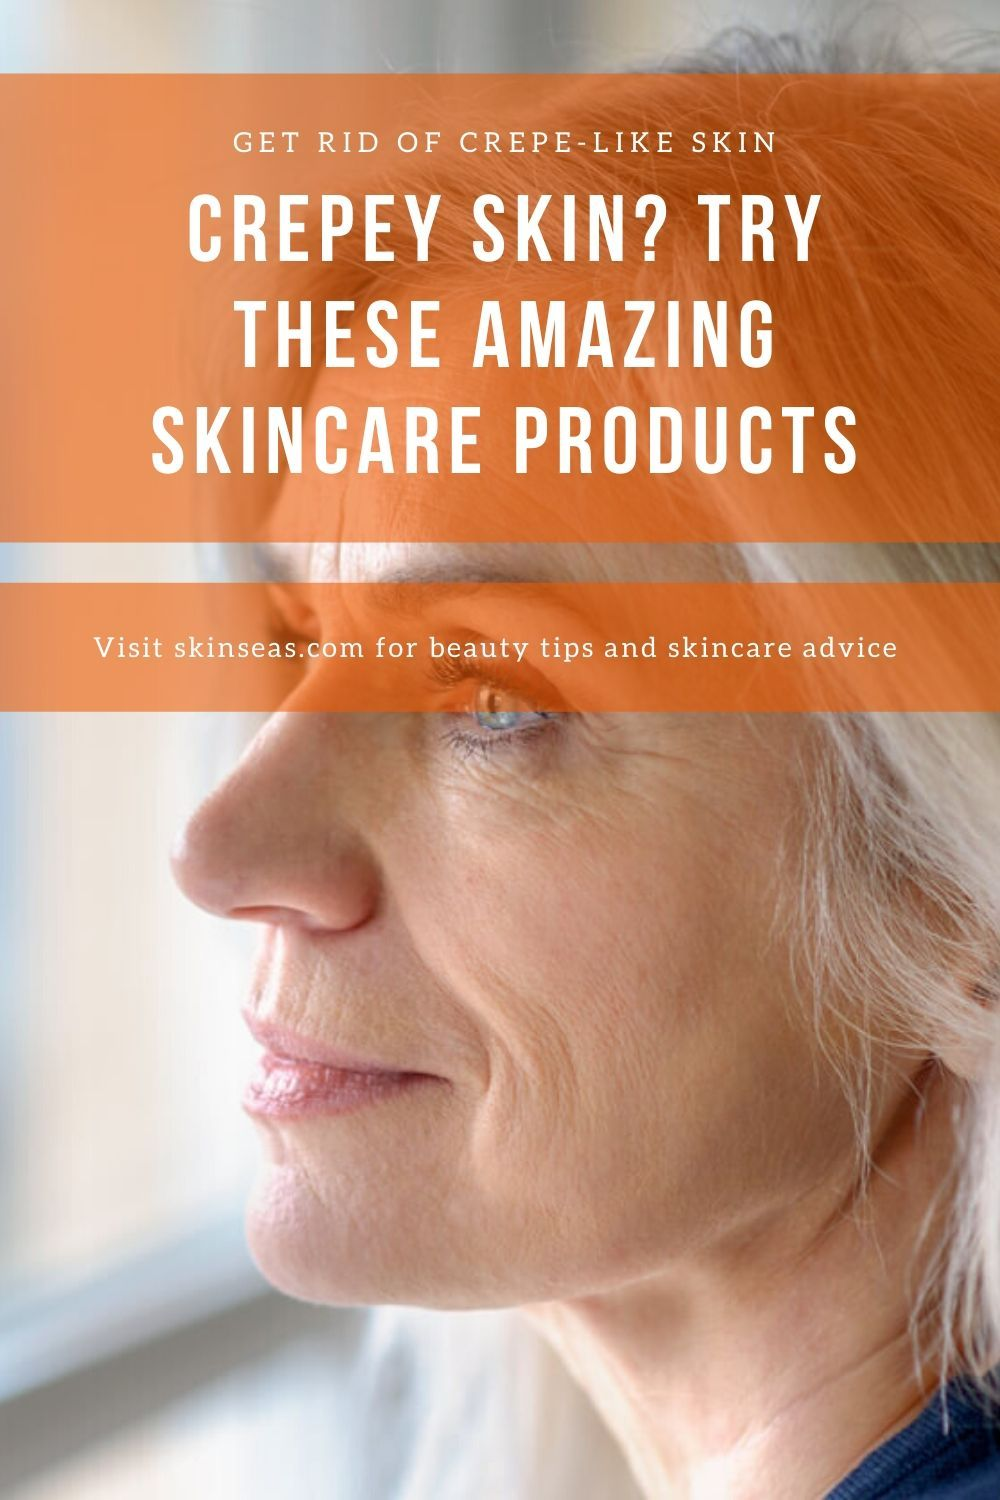 Crepey Skin Try These Amazing Products That Work In 2020 Crepey Skin Skin Body Lotions